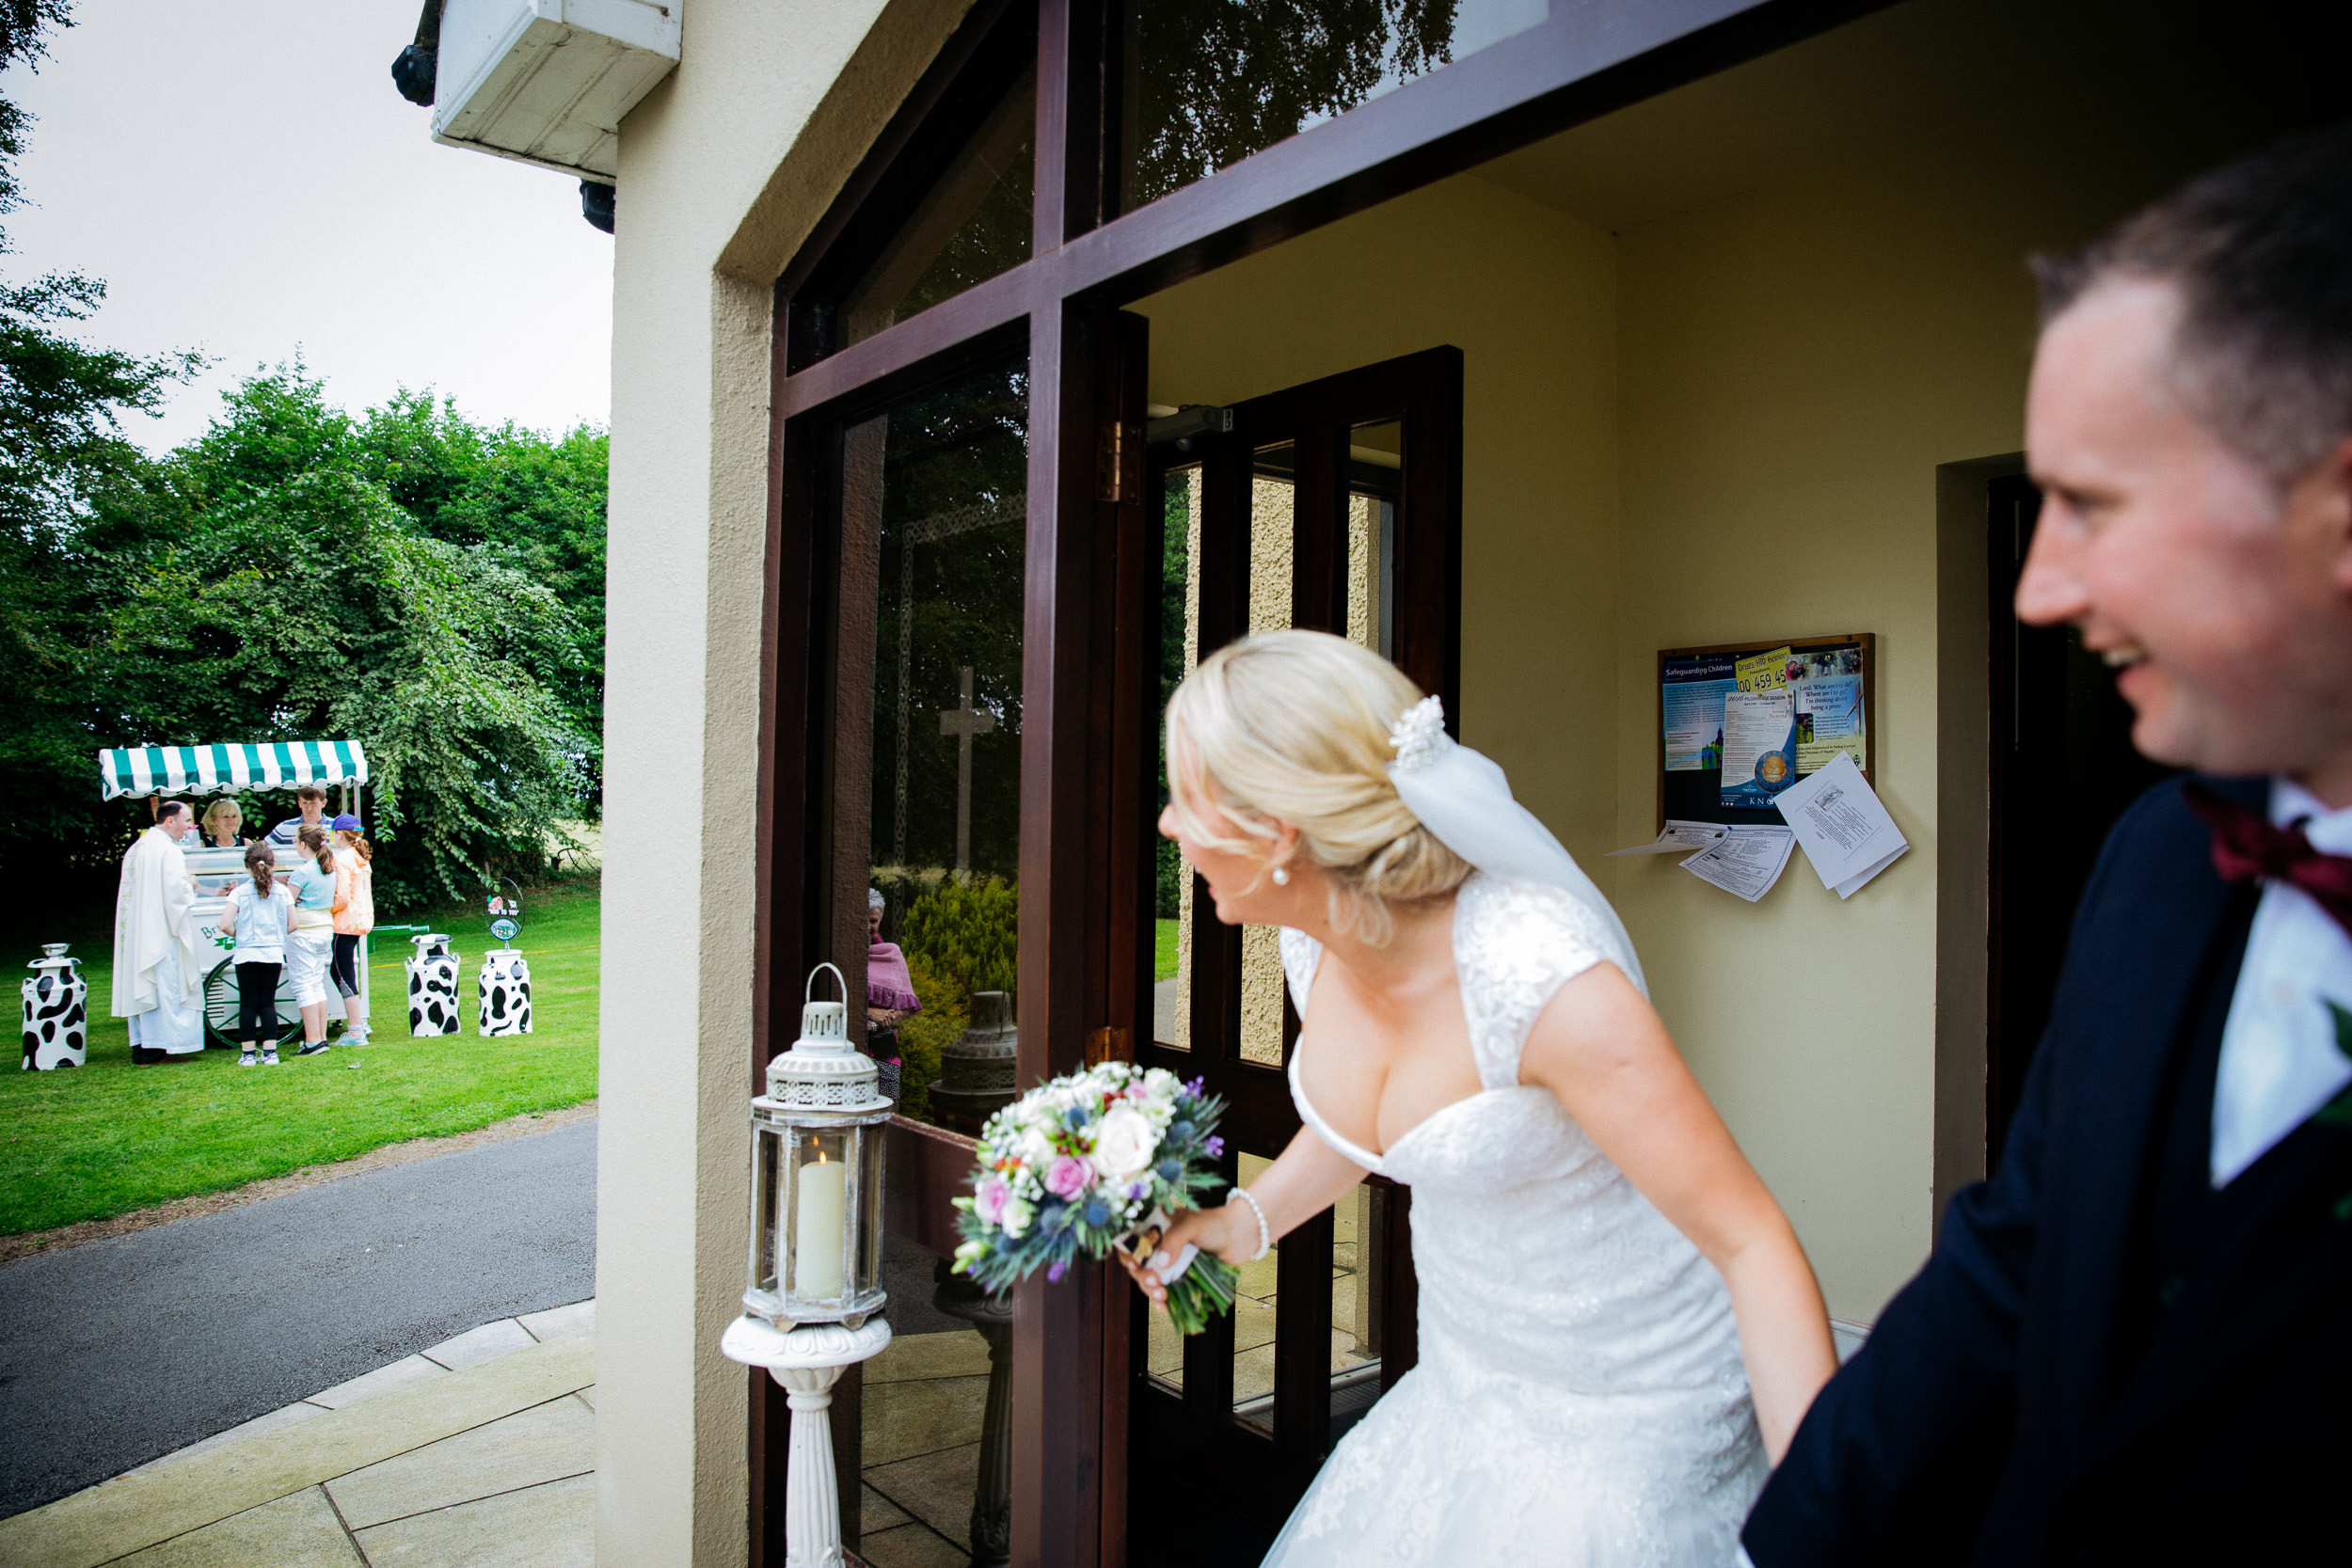 clairebyrnephotography-fun-wedding-photographer-ireland-creative-97.jpg